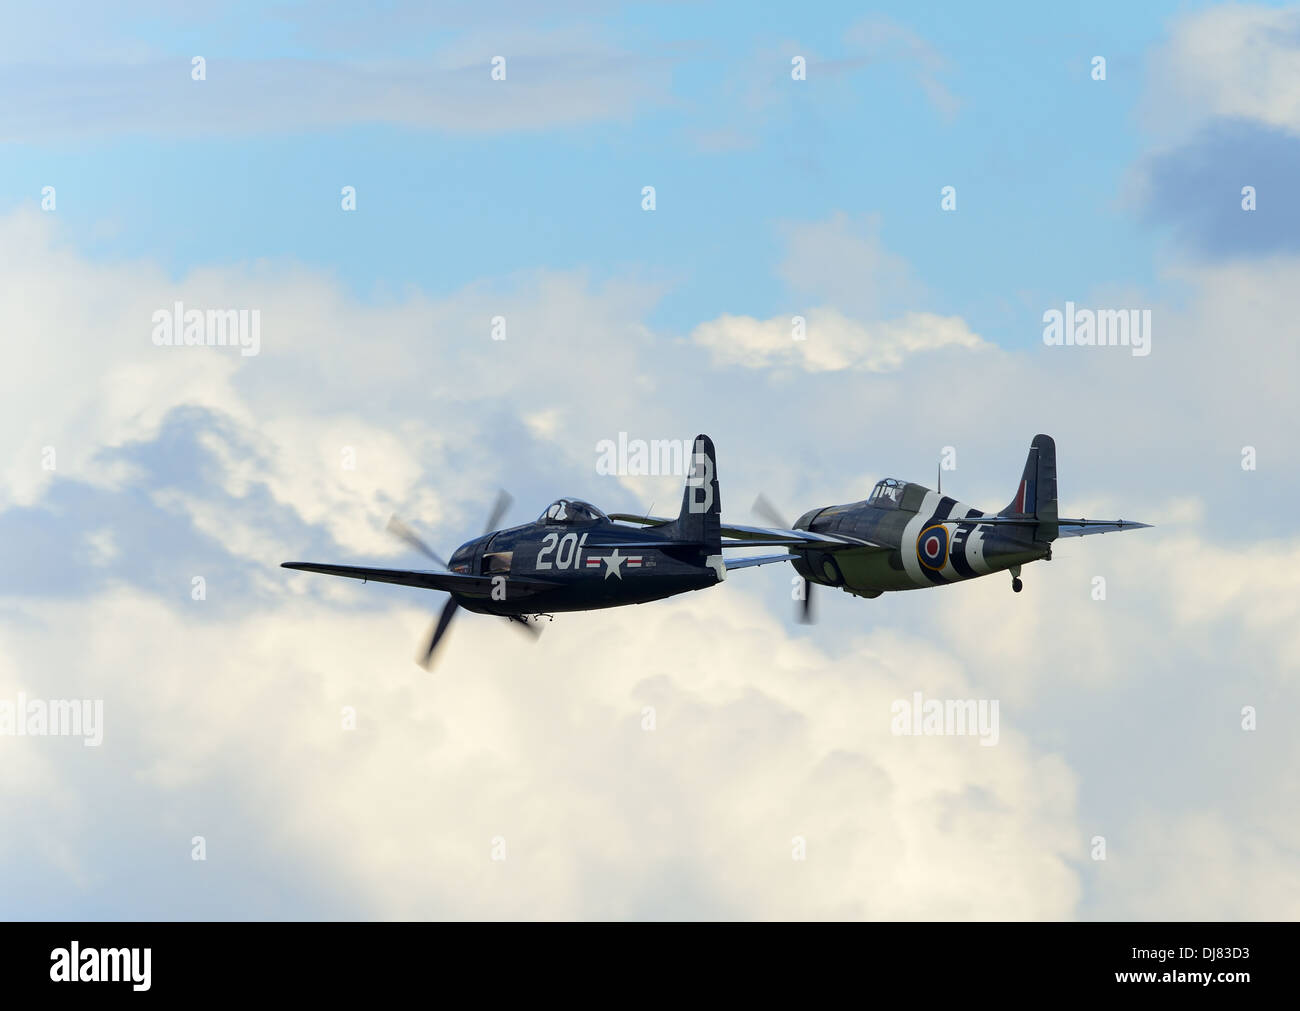 Gruman Bearcat and Wildcat. WW2 fighter planes flying in extremely close formation at Duxford air show. UK 2013 - Stock Image